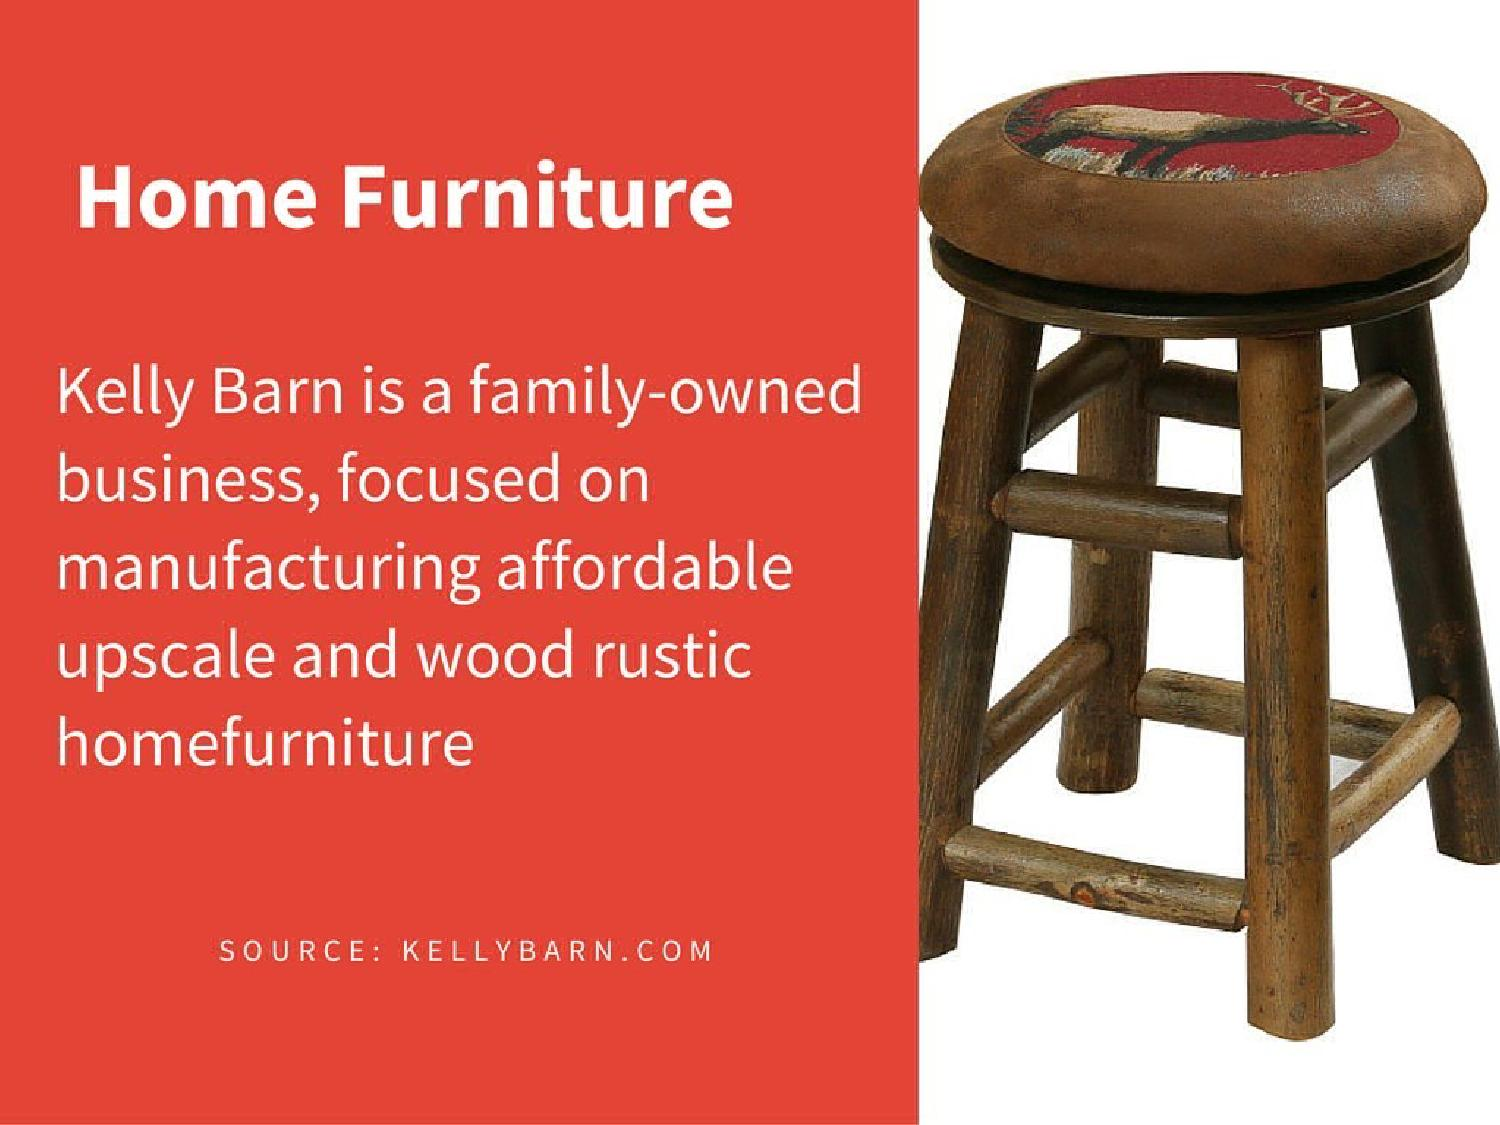 38 home choice furniture blaine mn leather sofa repair minneapolis home office furniture Home choice furniture burnsville mn